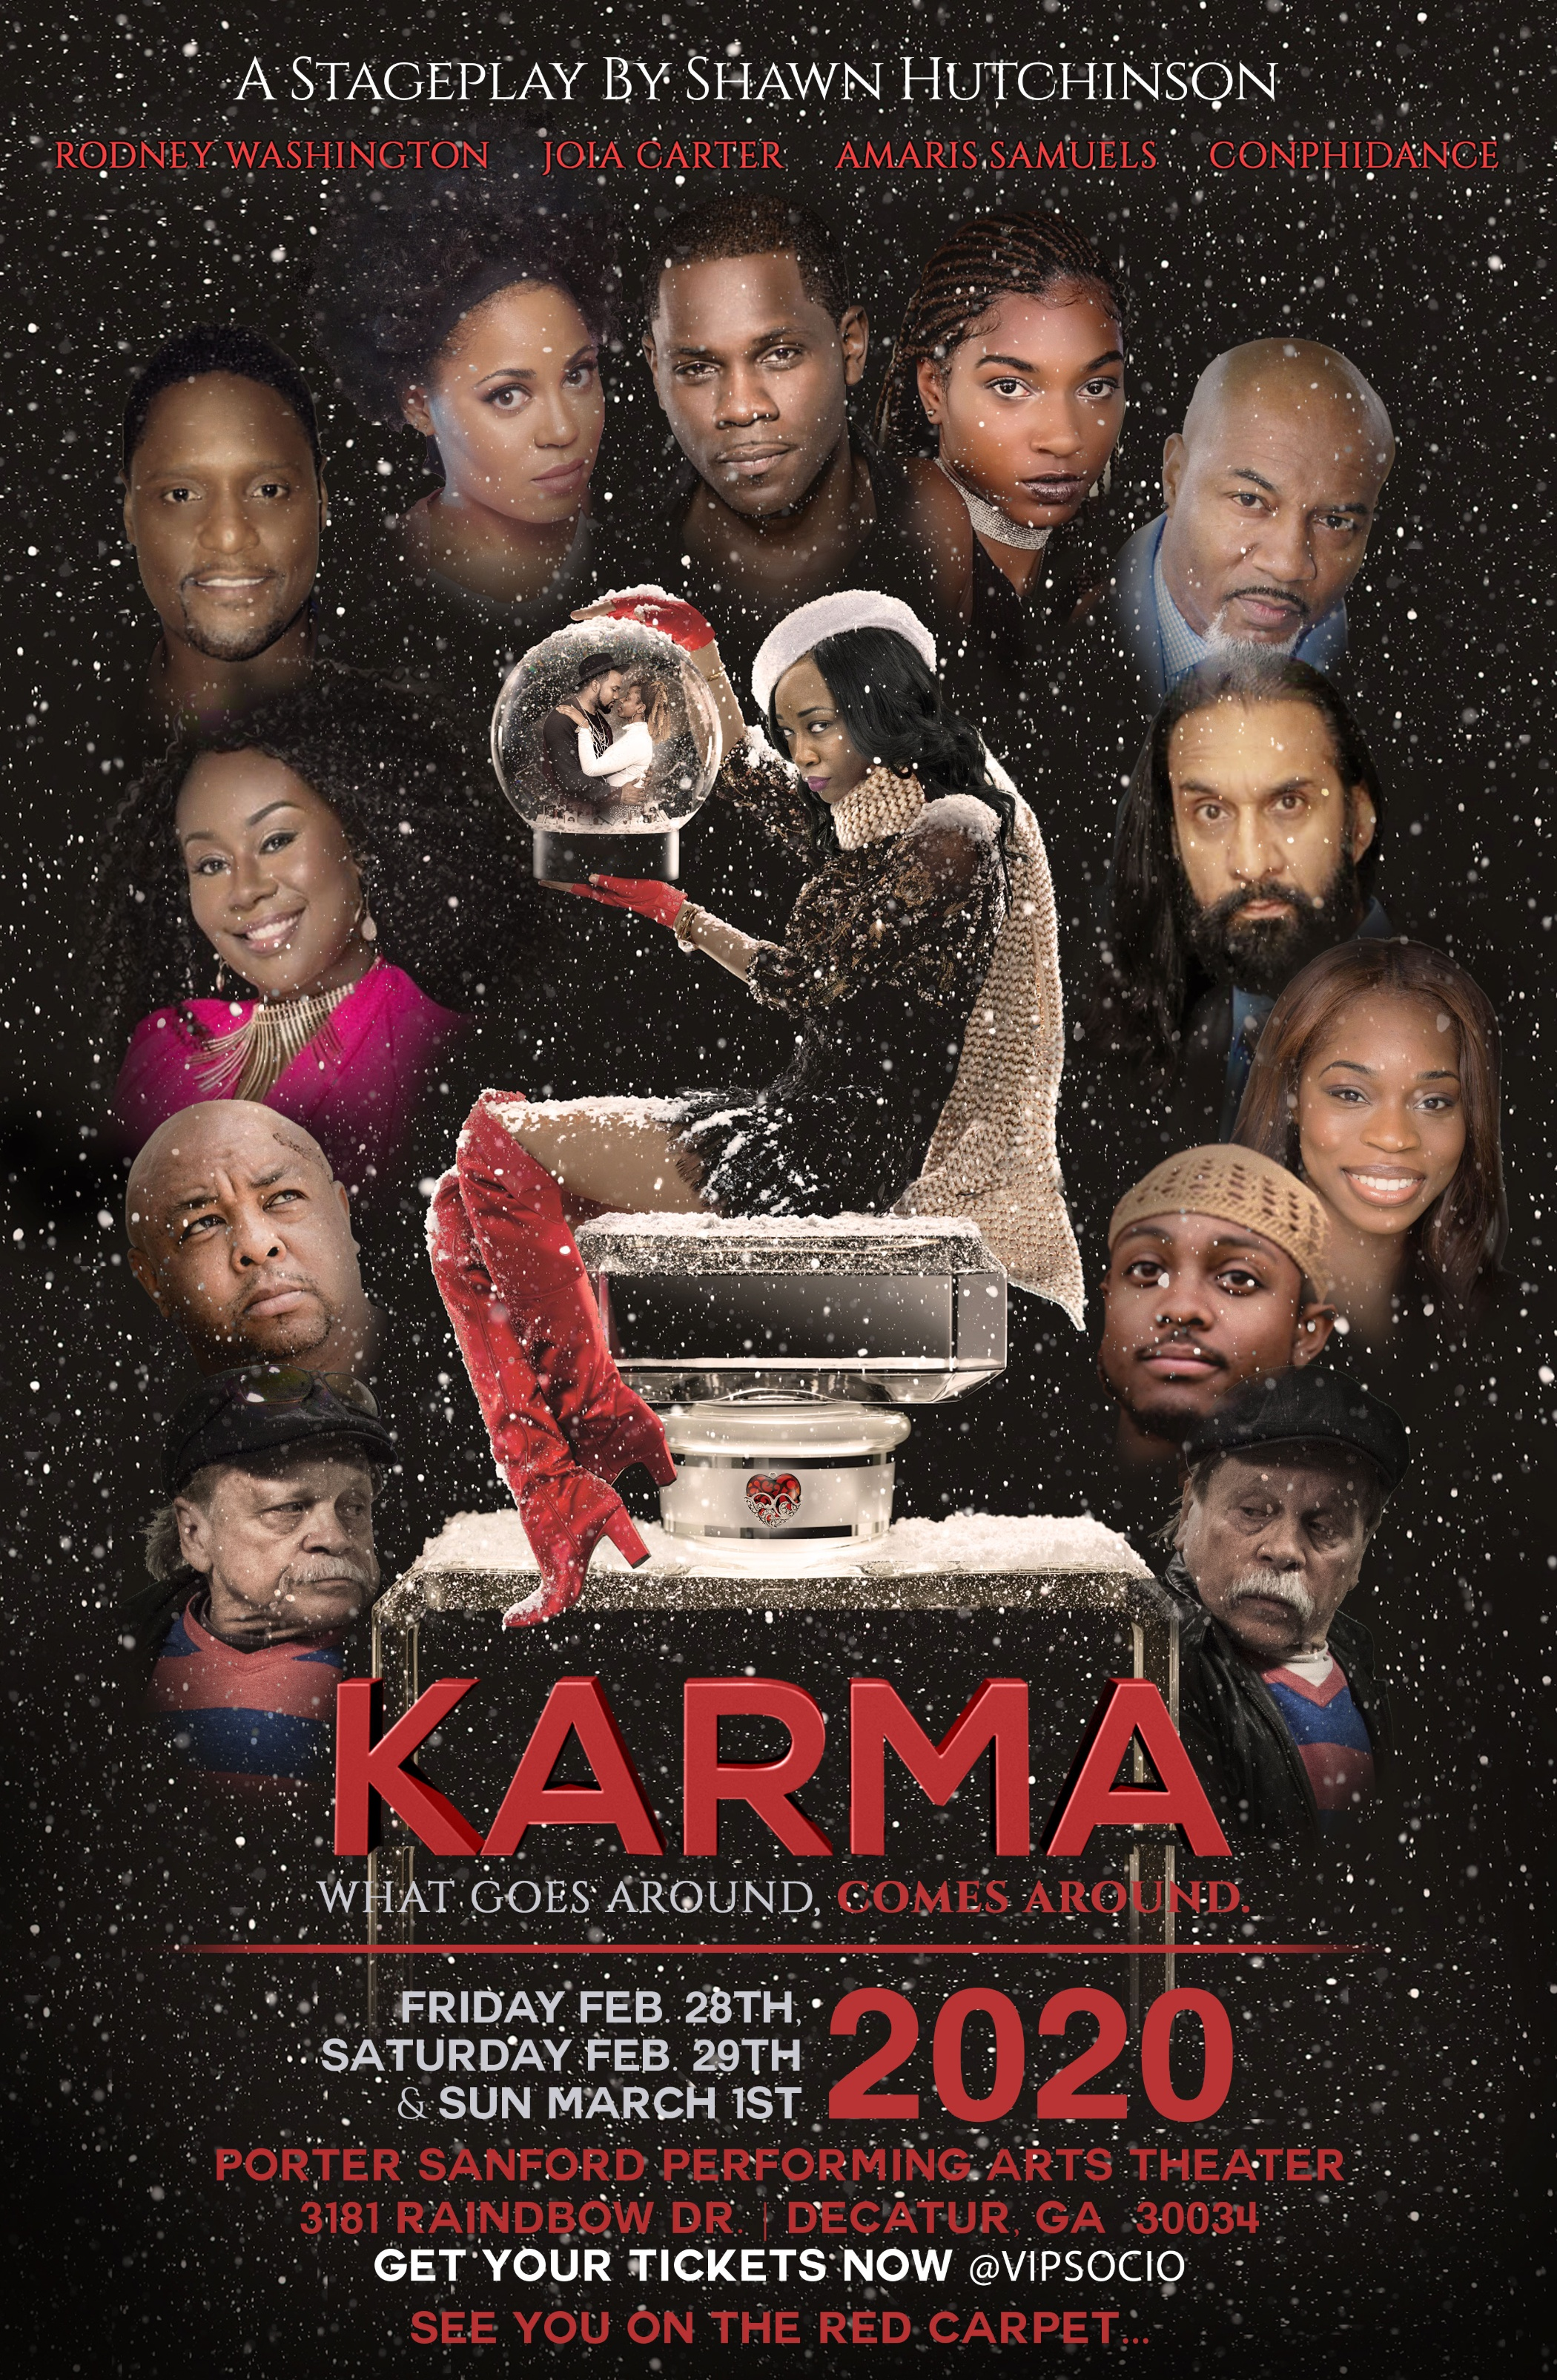 Karma The Stage Play